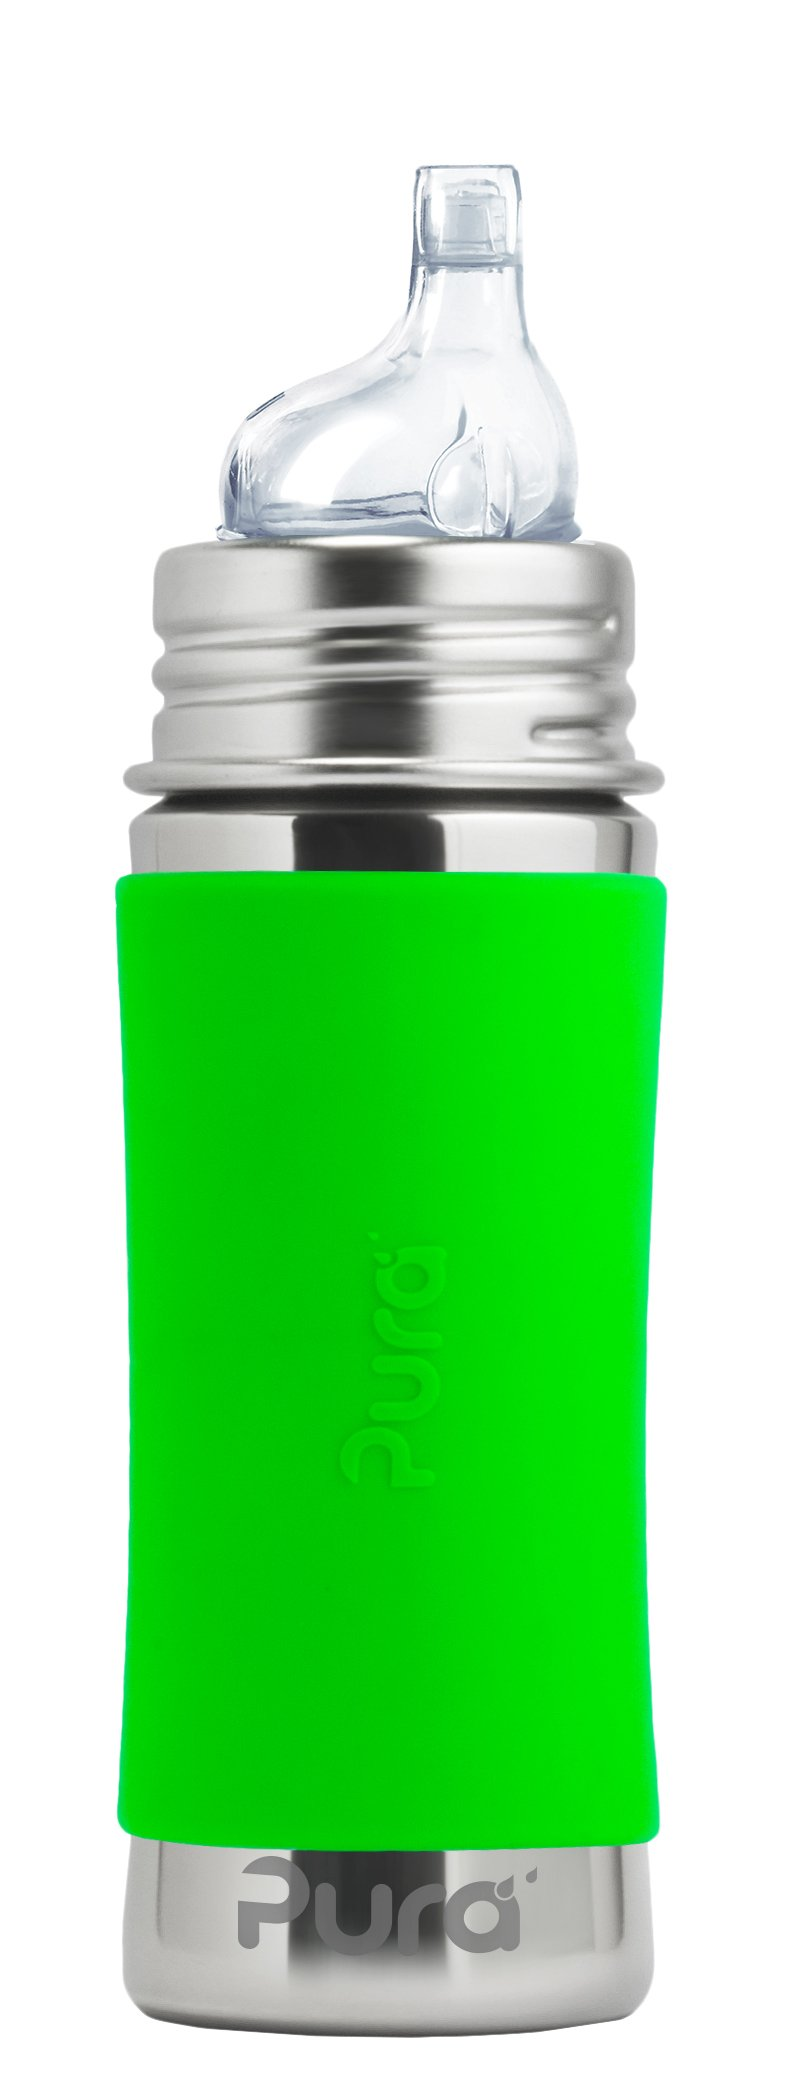 Pura Kiki 11 oz / 325 ml Stainless Steel Sippy Cup with Silicone XL Sipper Spout & Sleeve, Green (Plastic Free, NonToxic Certified, BPA Free)